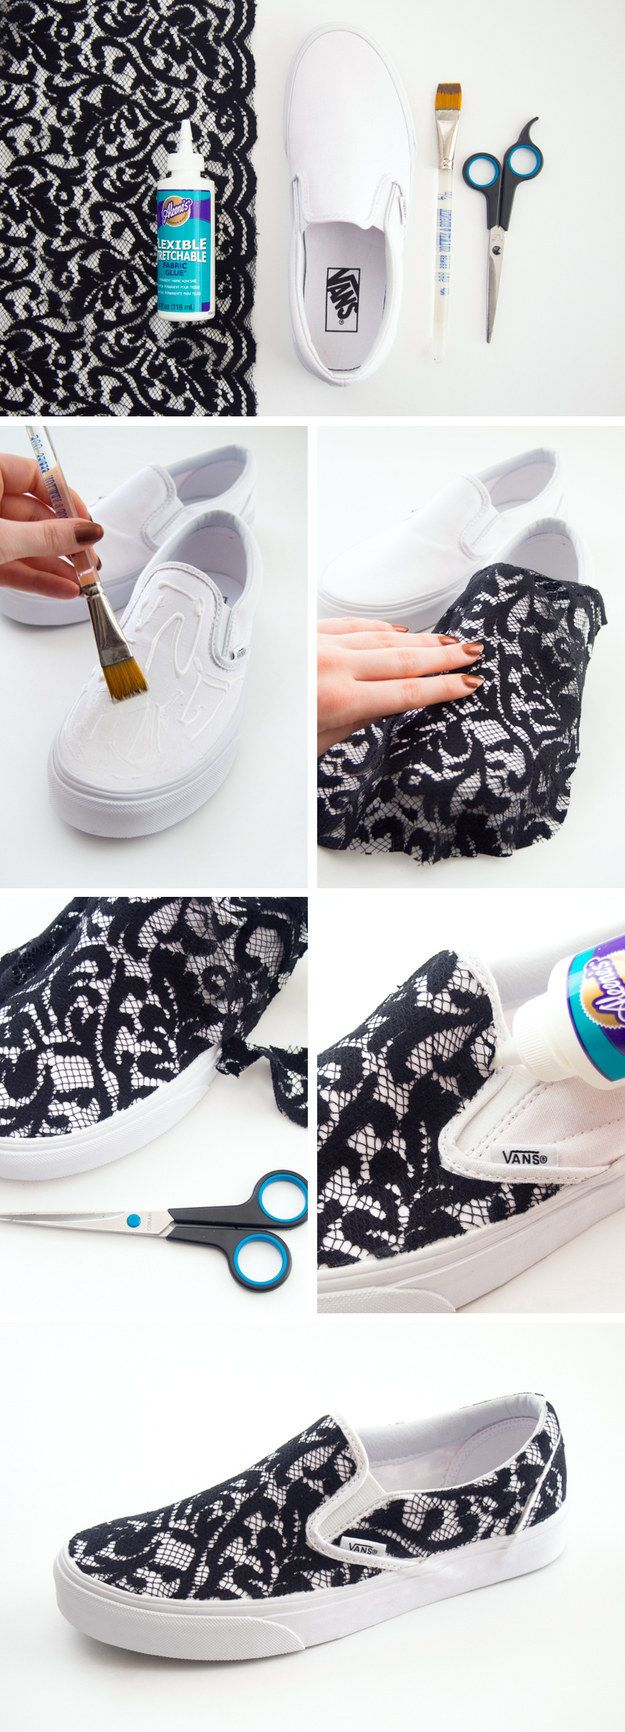 Apply black lace to a pair of slip-ons for a cute upgrade. | 21 Super-Easy Ways To Make Your Shoes Look More Expensive